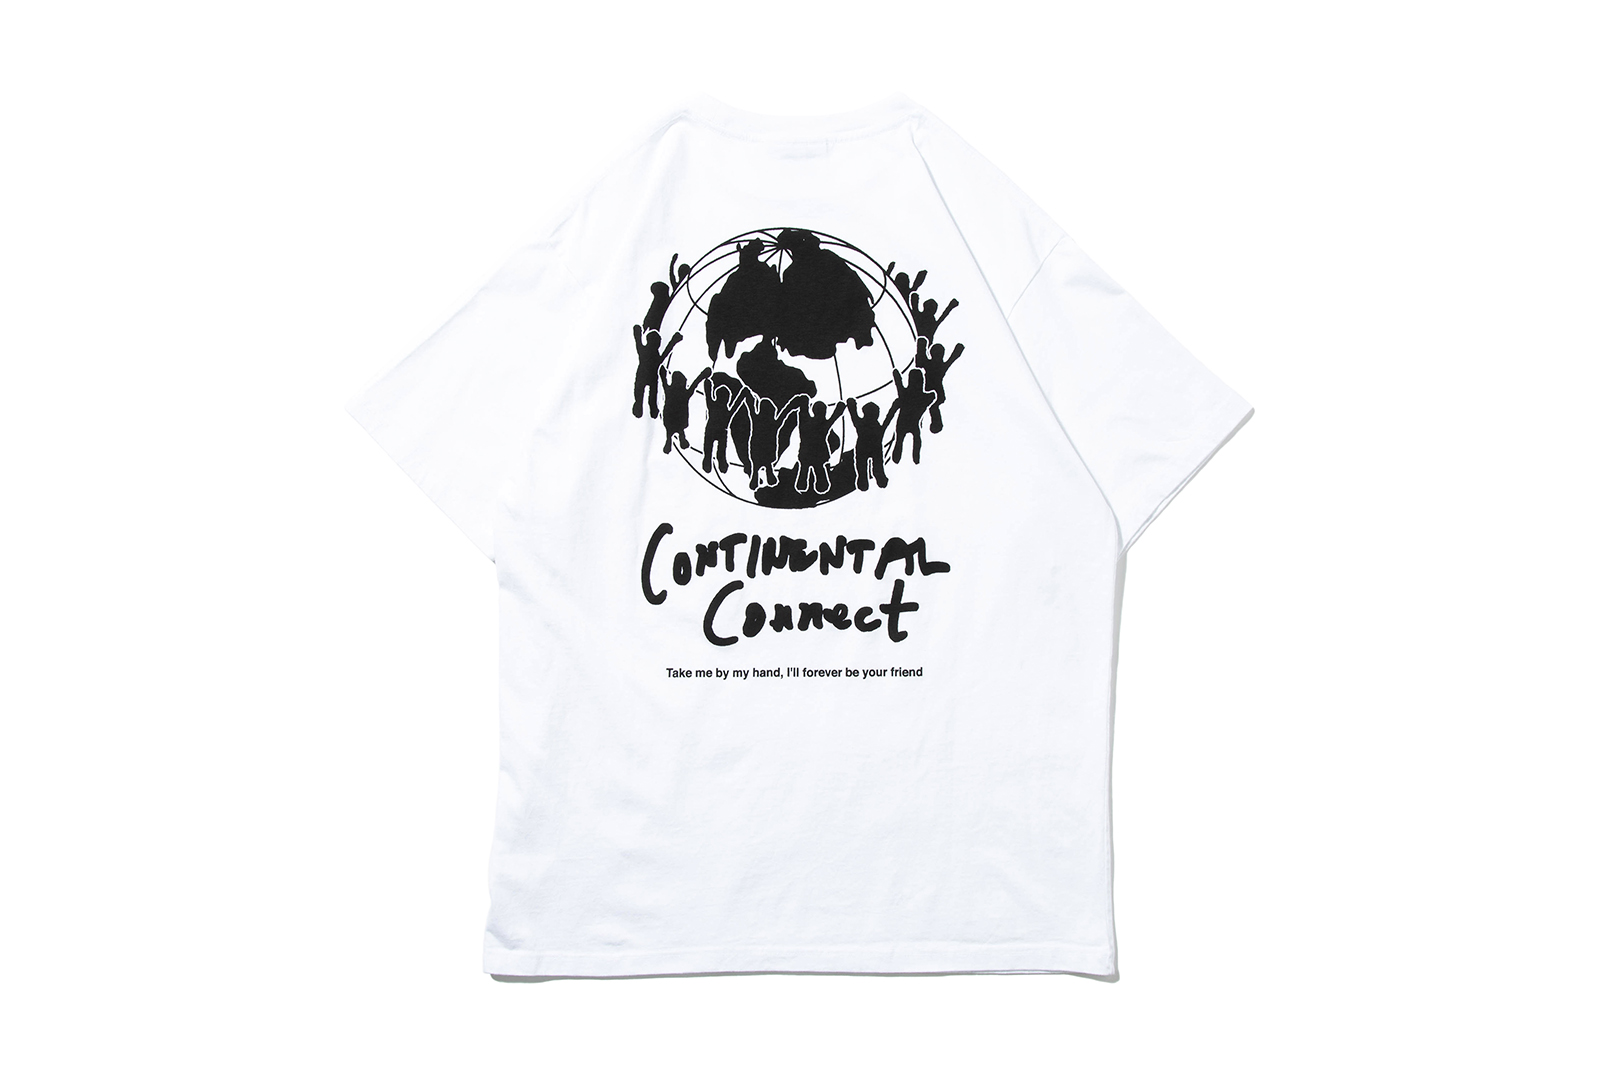 continental-connect-tee_p2